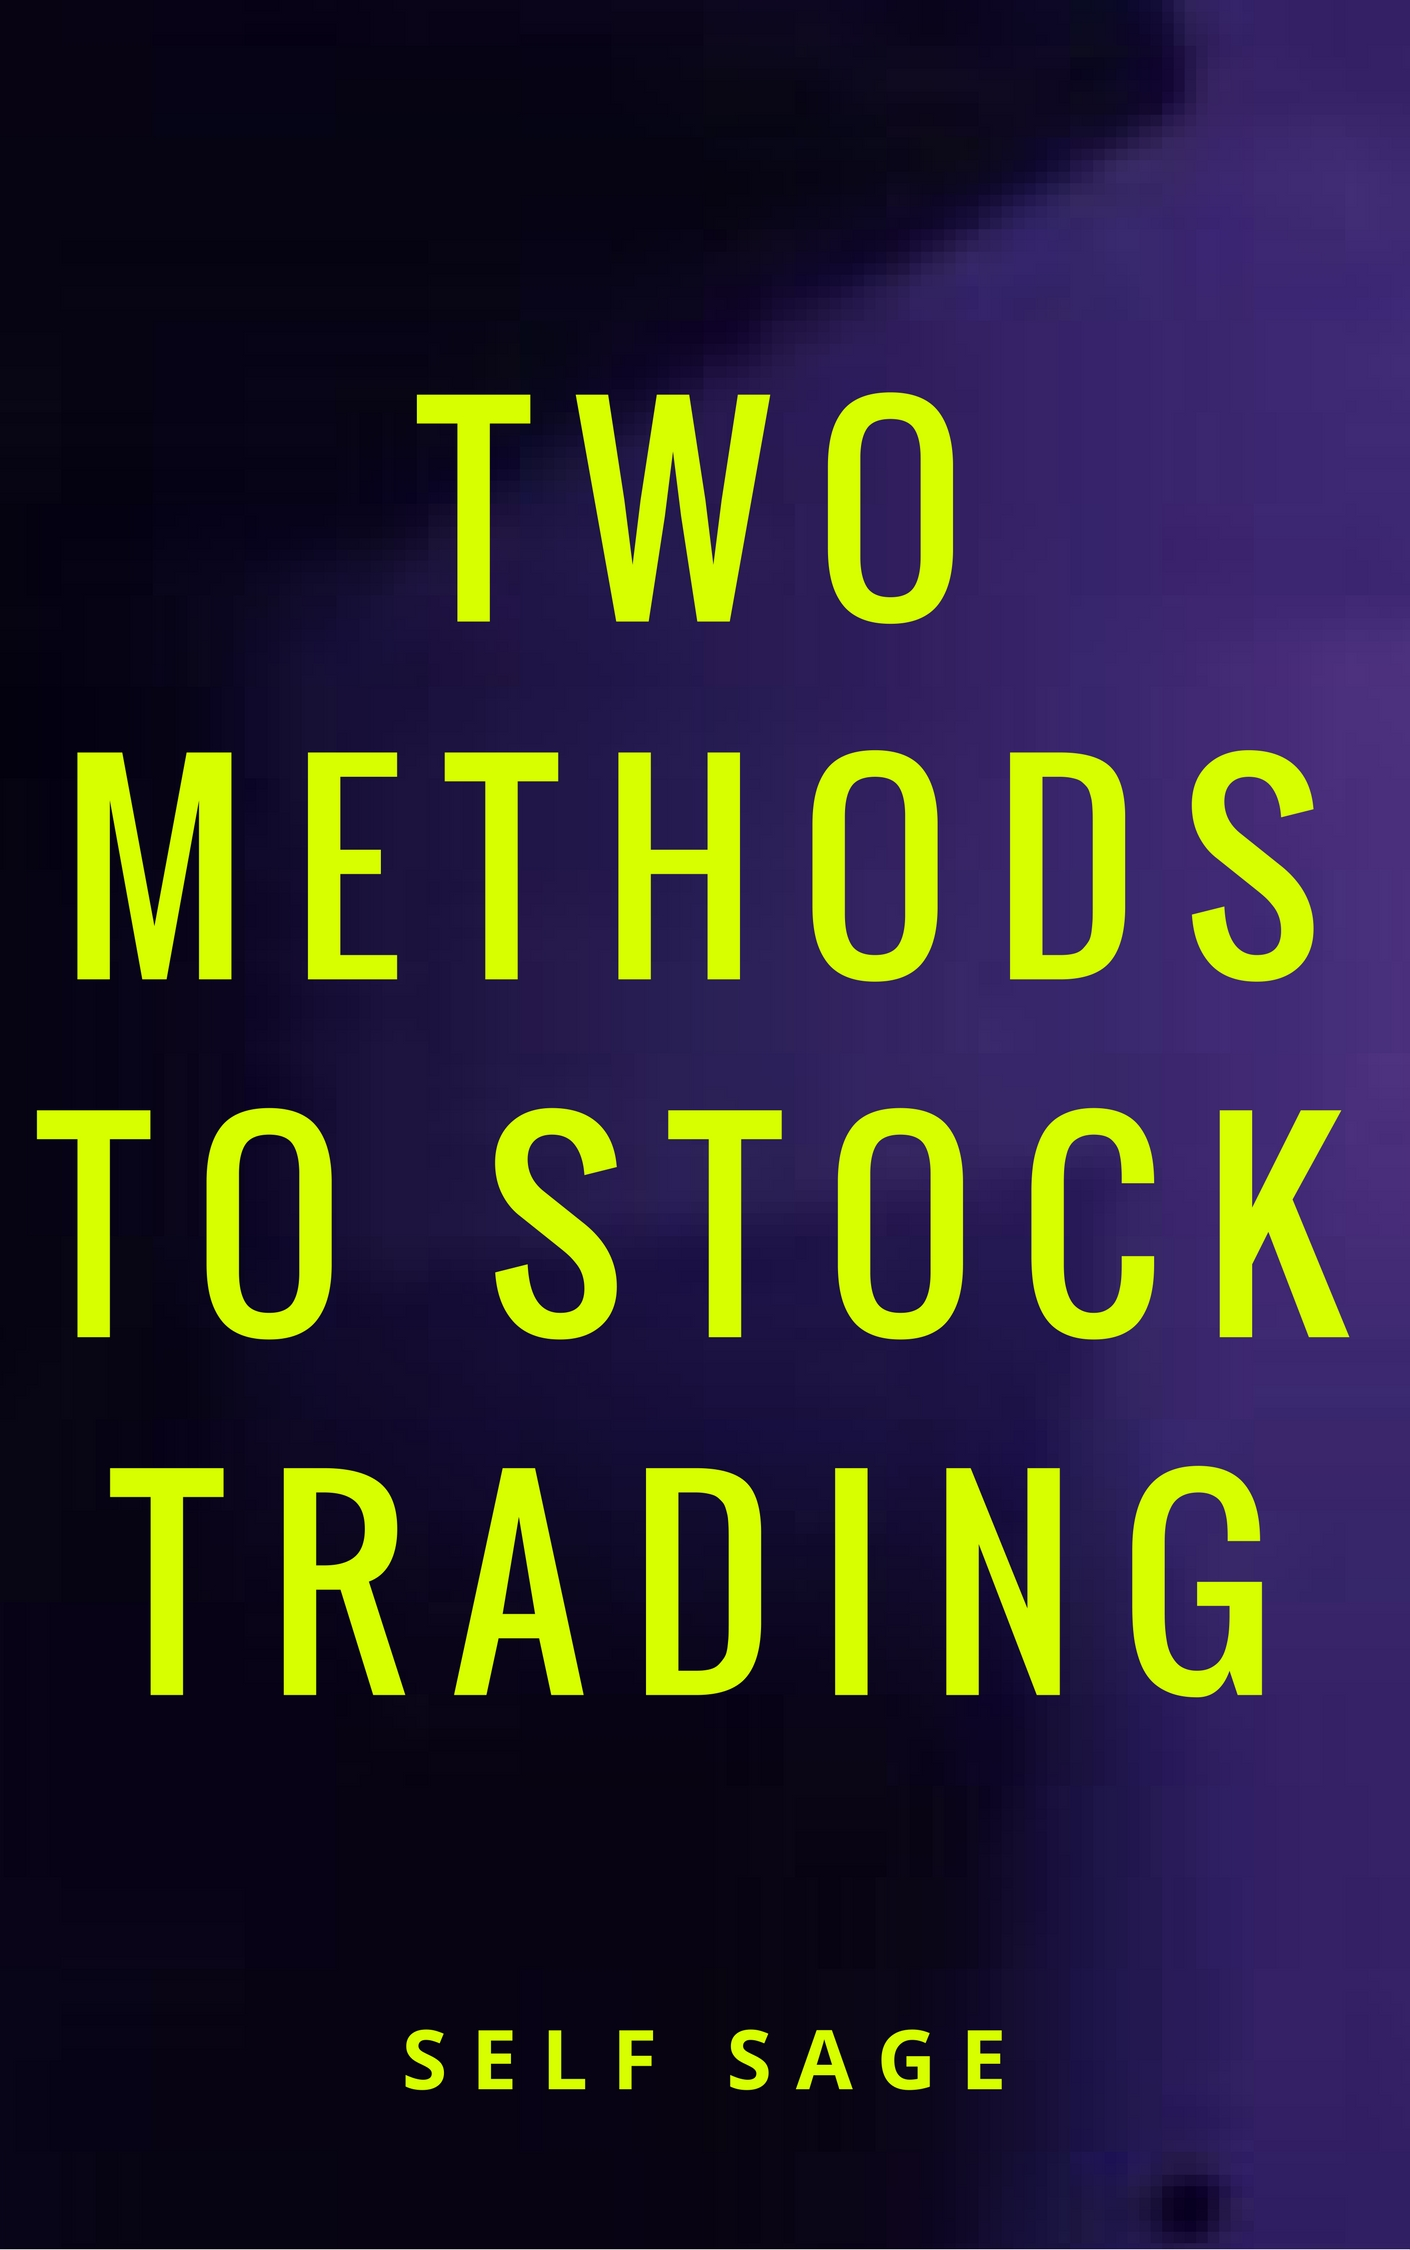 Two methods to stock trading Buy & Sell eBook